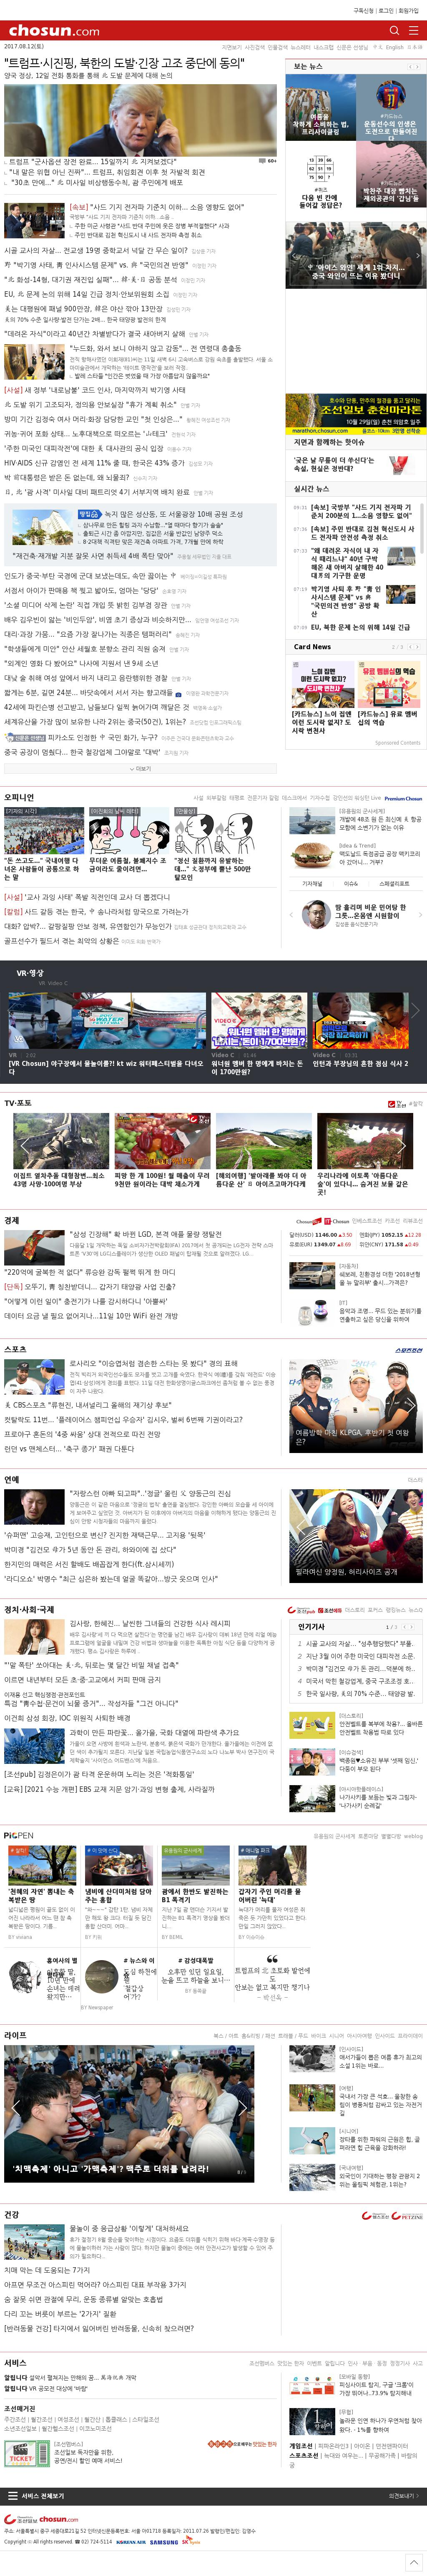 chosun.com at Saturday Aug. 12, 2017, 12:02 p.m. UTC